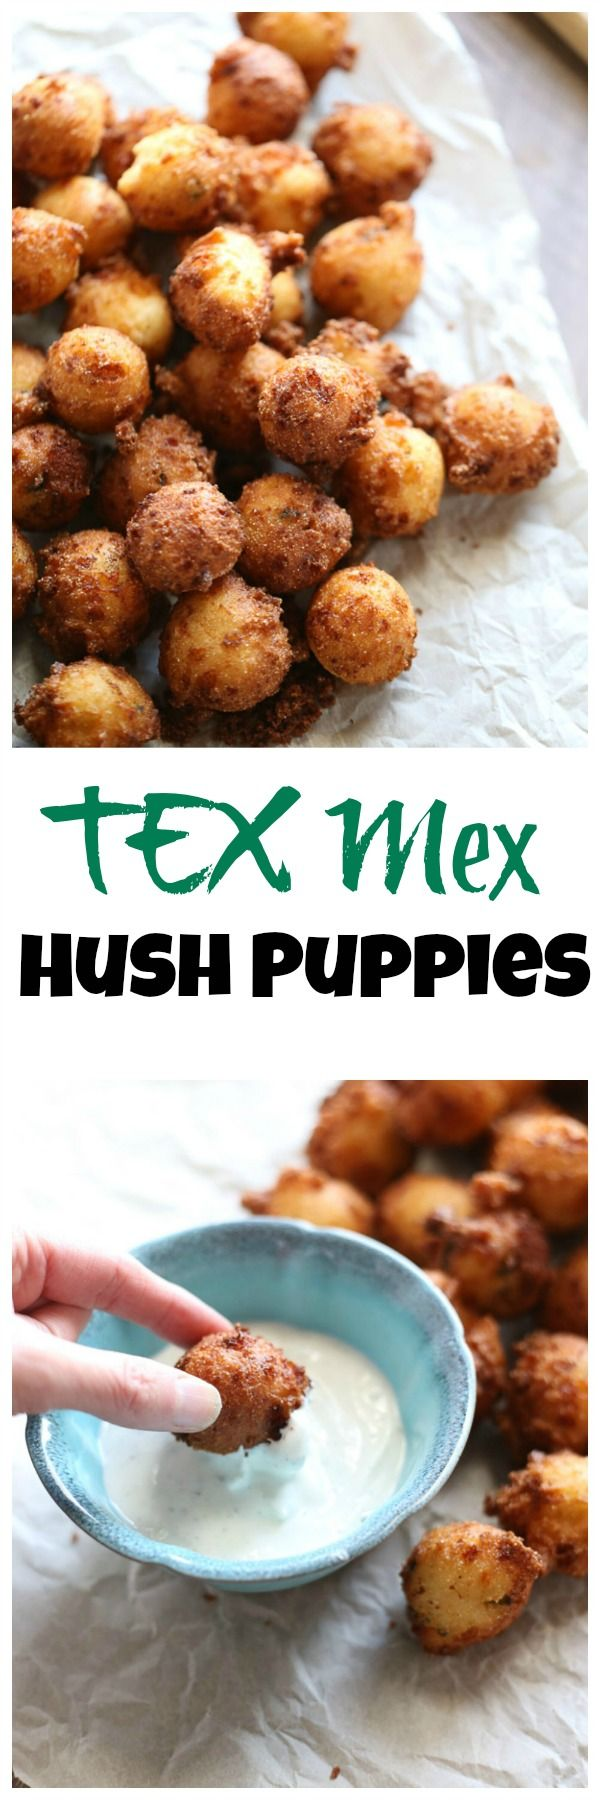 This tex mex hush puppy recipe is so fun and easy; one bite and you will be hooked!  Don't forget the buttermilk ranch dipping sauce! lemonsforlulu.com